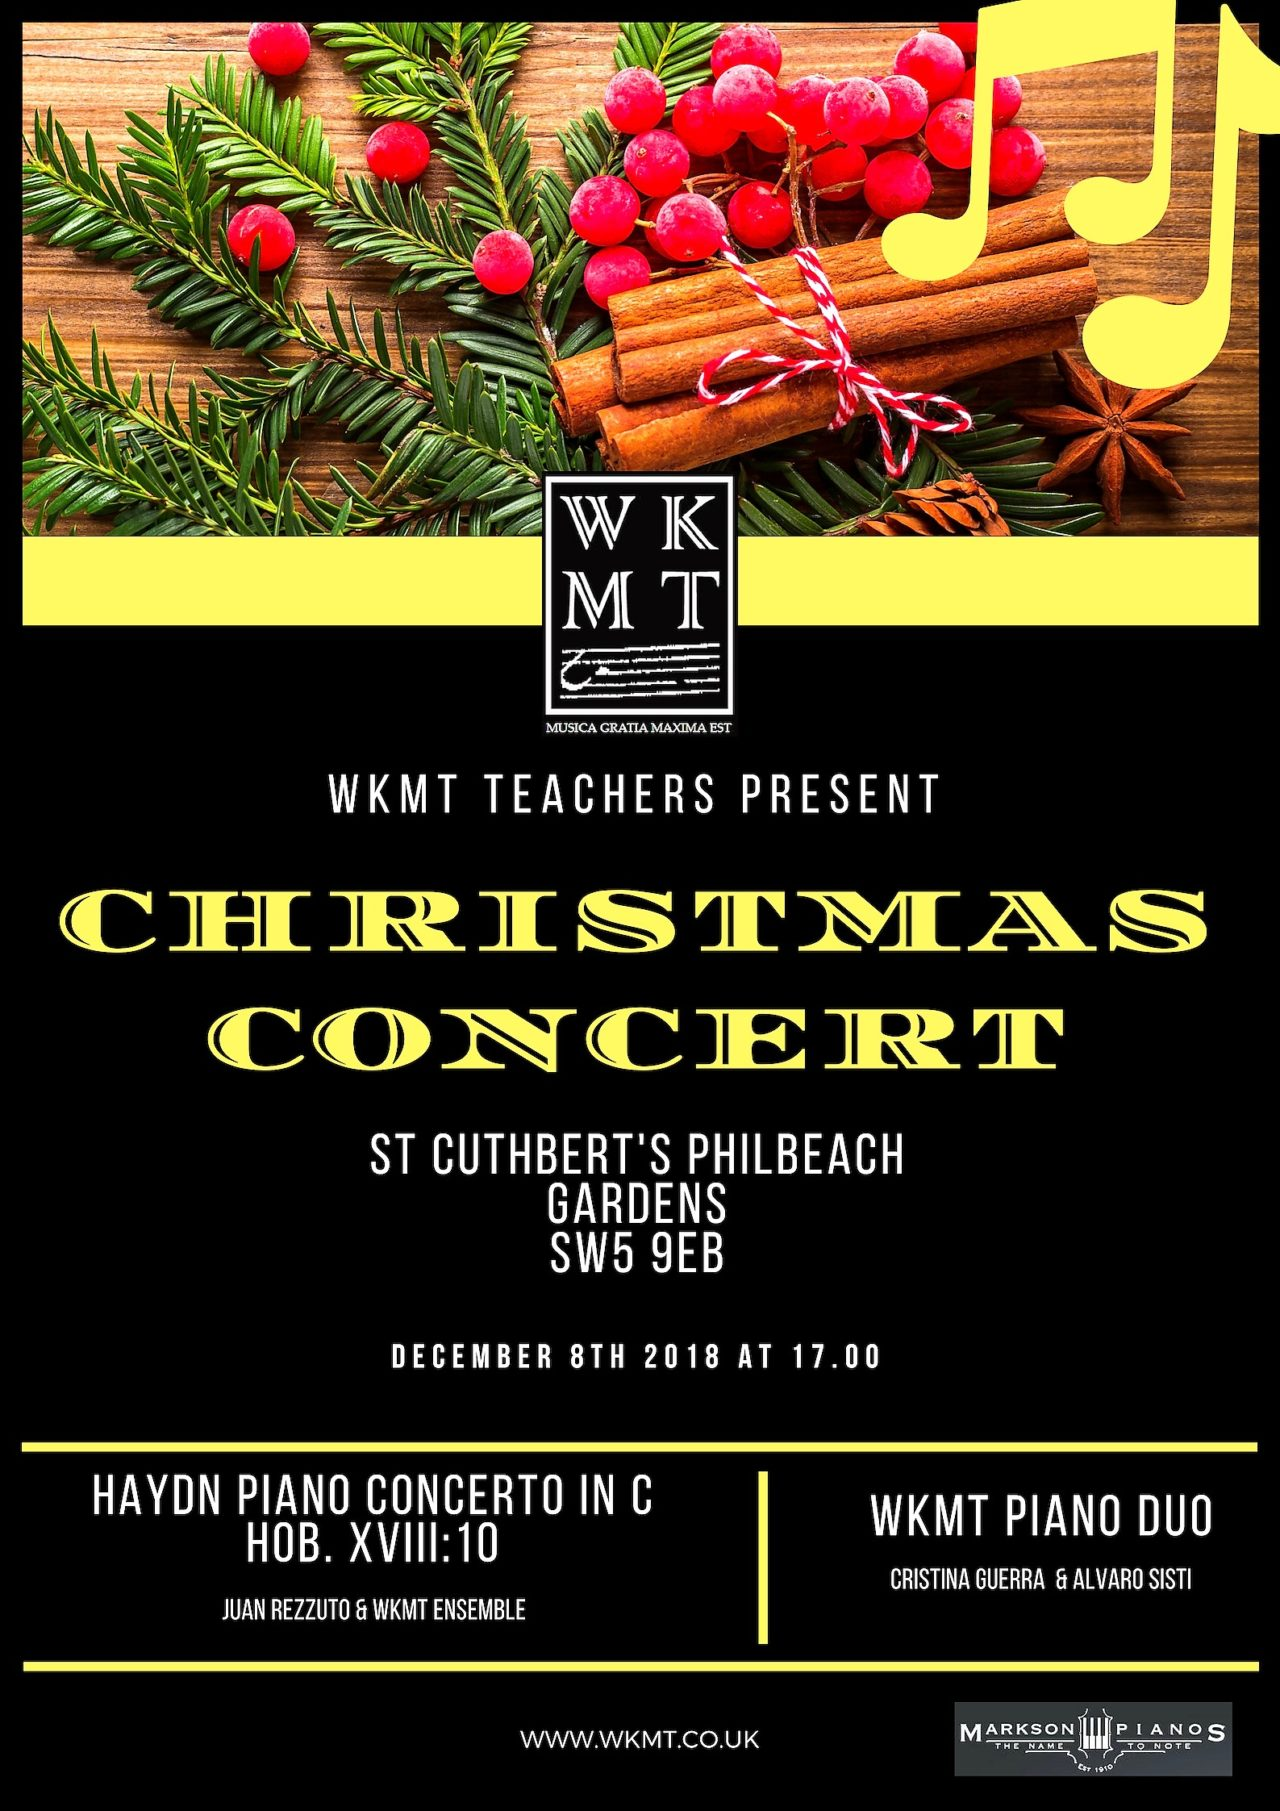 Two New Piano Performances by WKMT